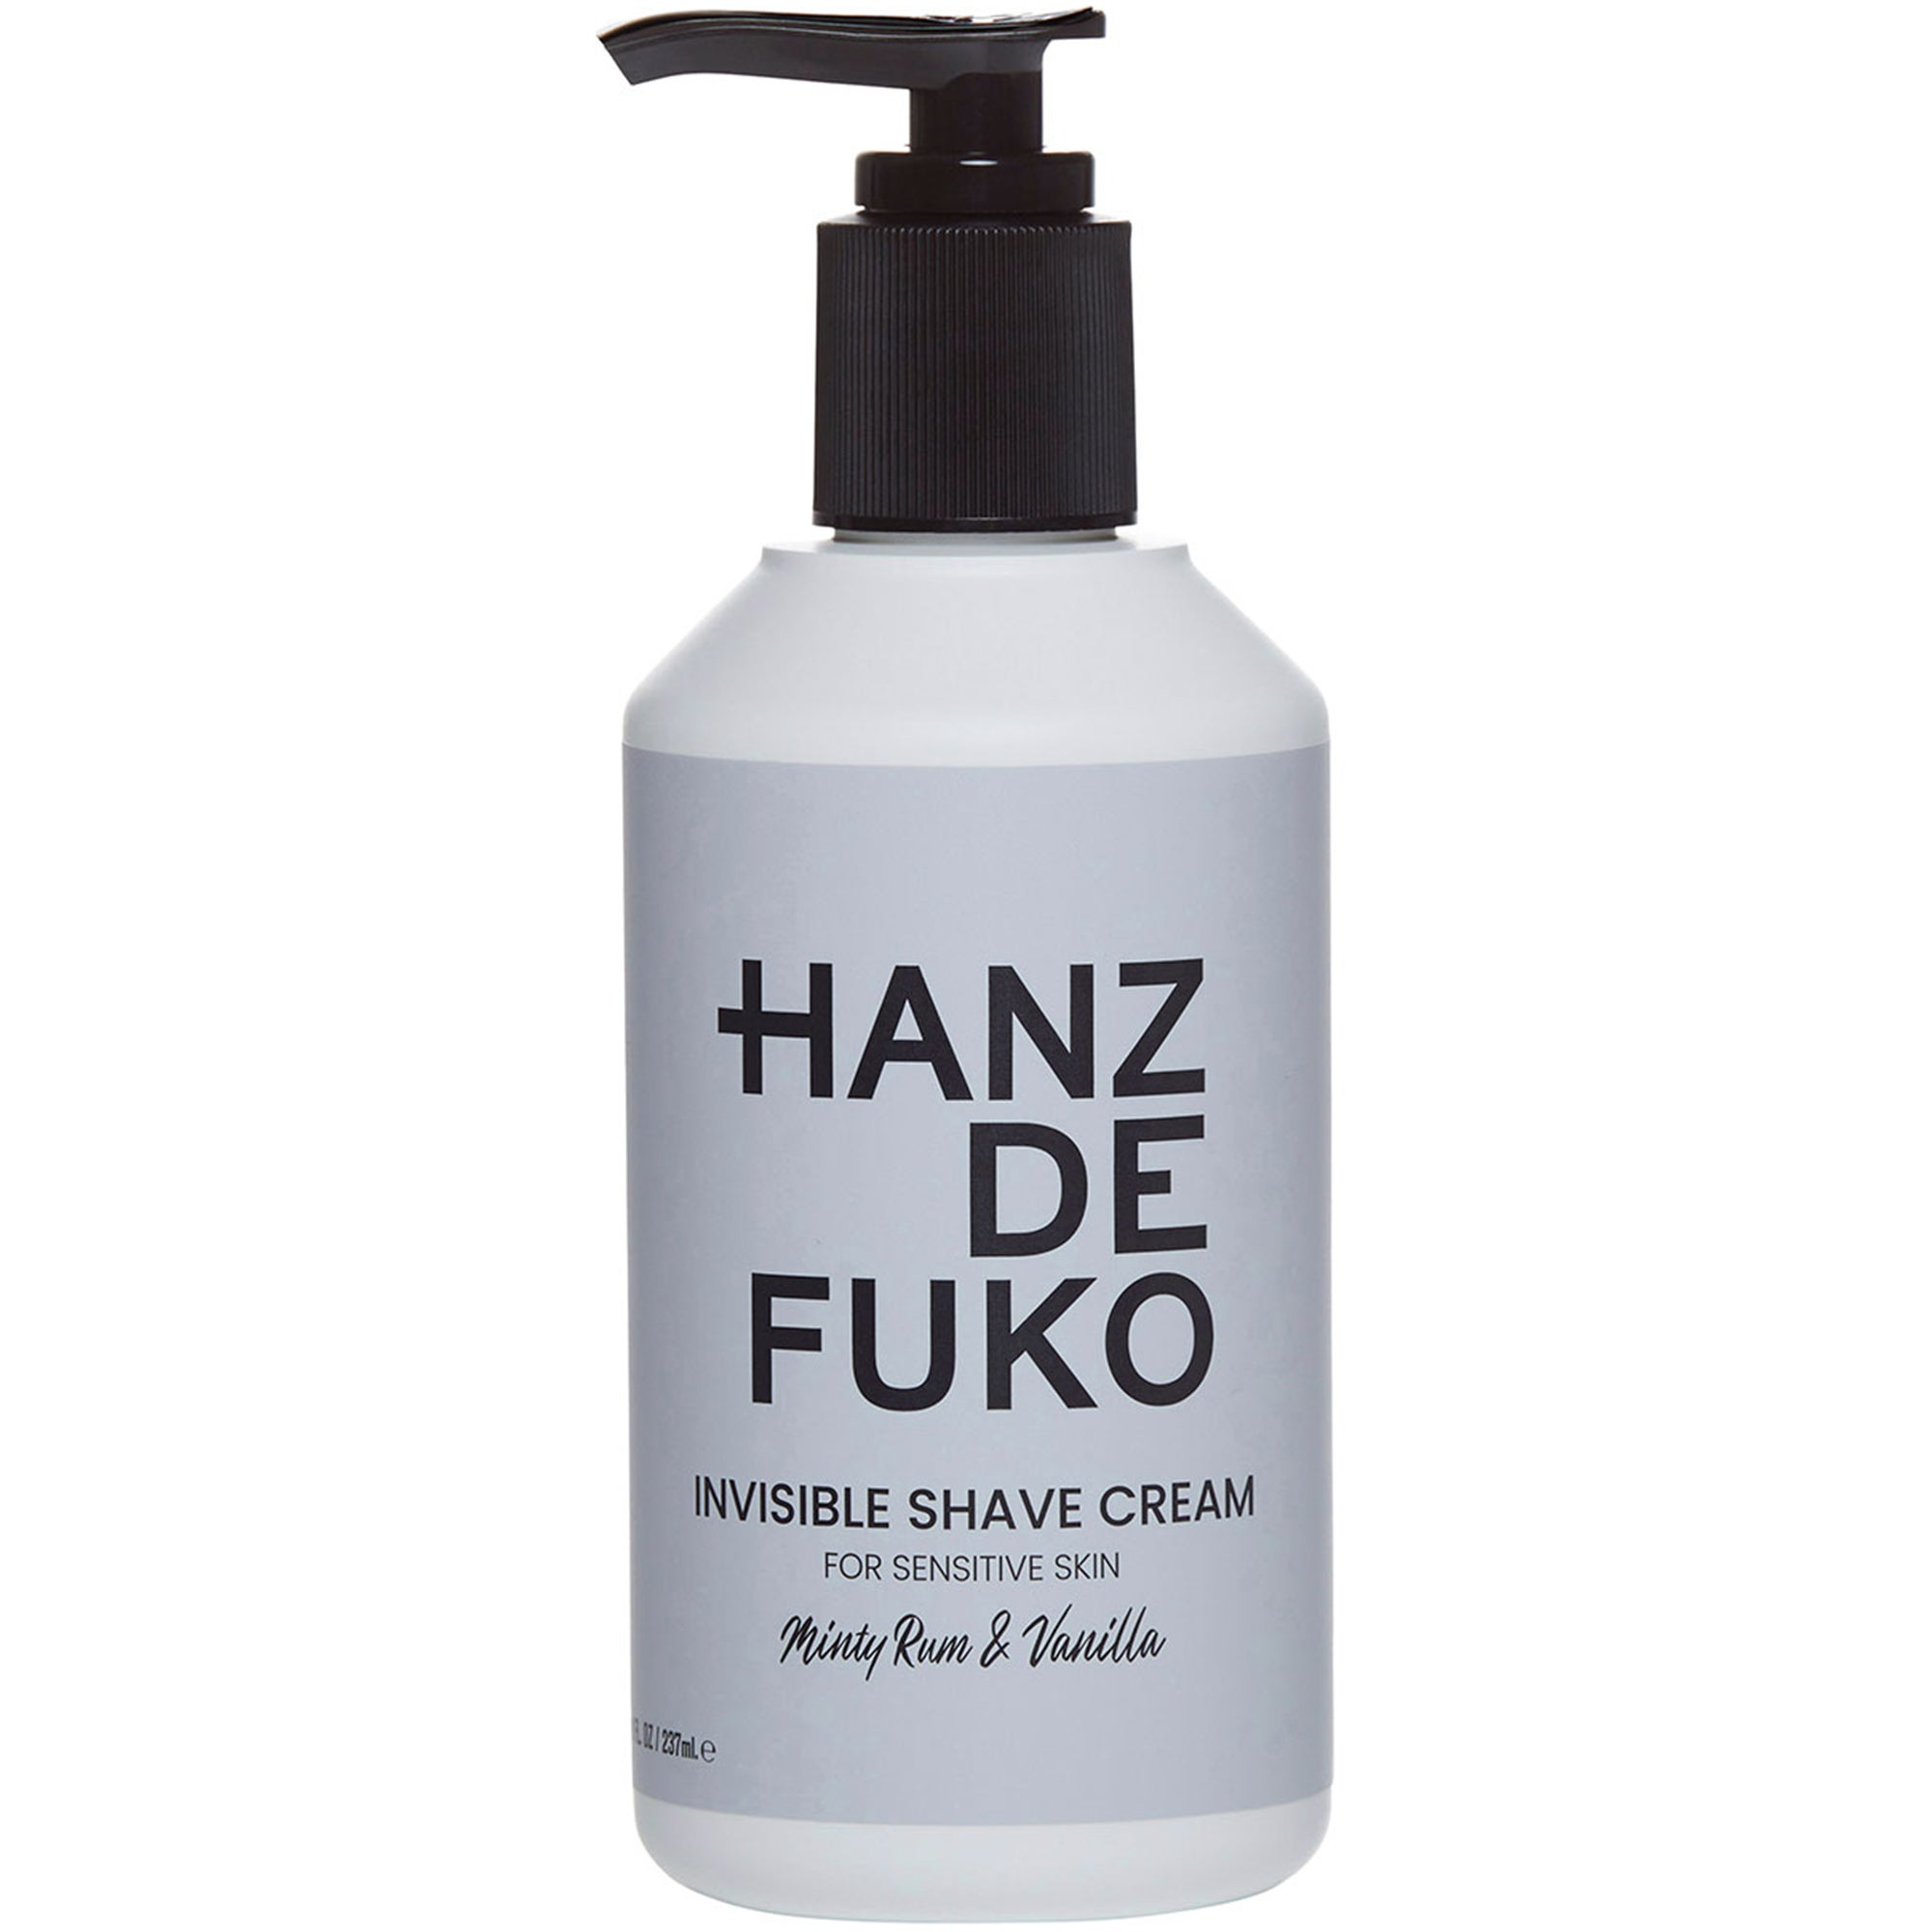 Hanz de Fuko Invisible Shave Cream,  237 ml Hanz de Fuko Under rakning